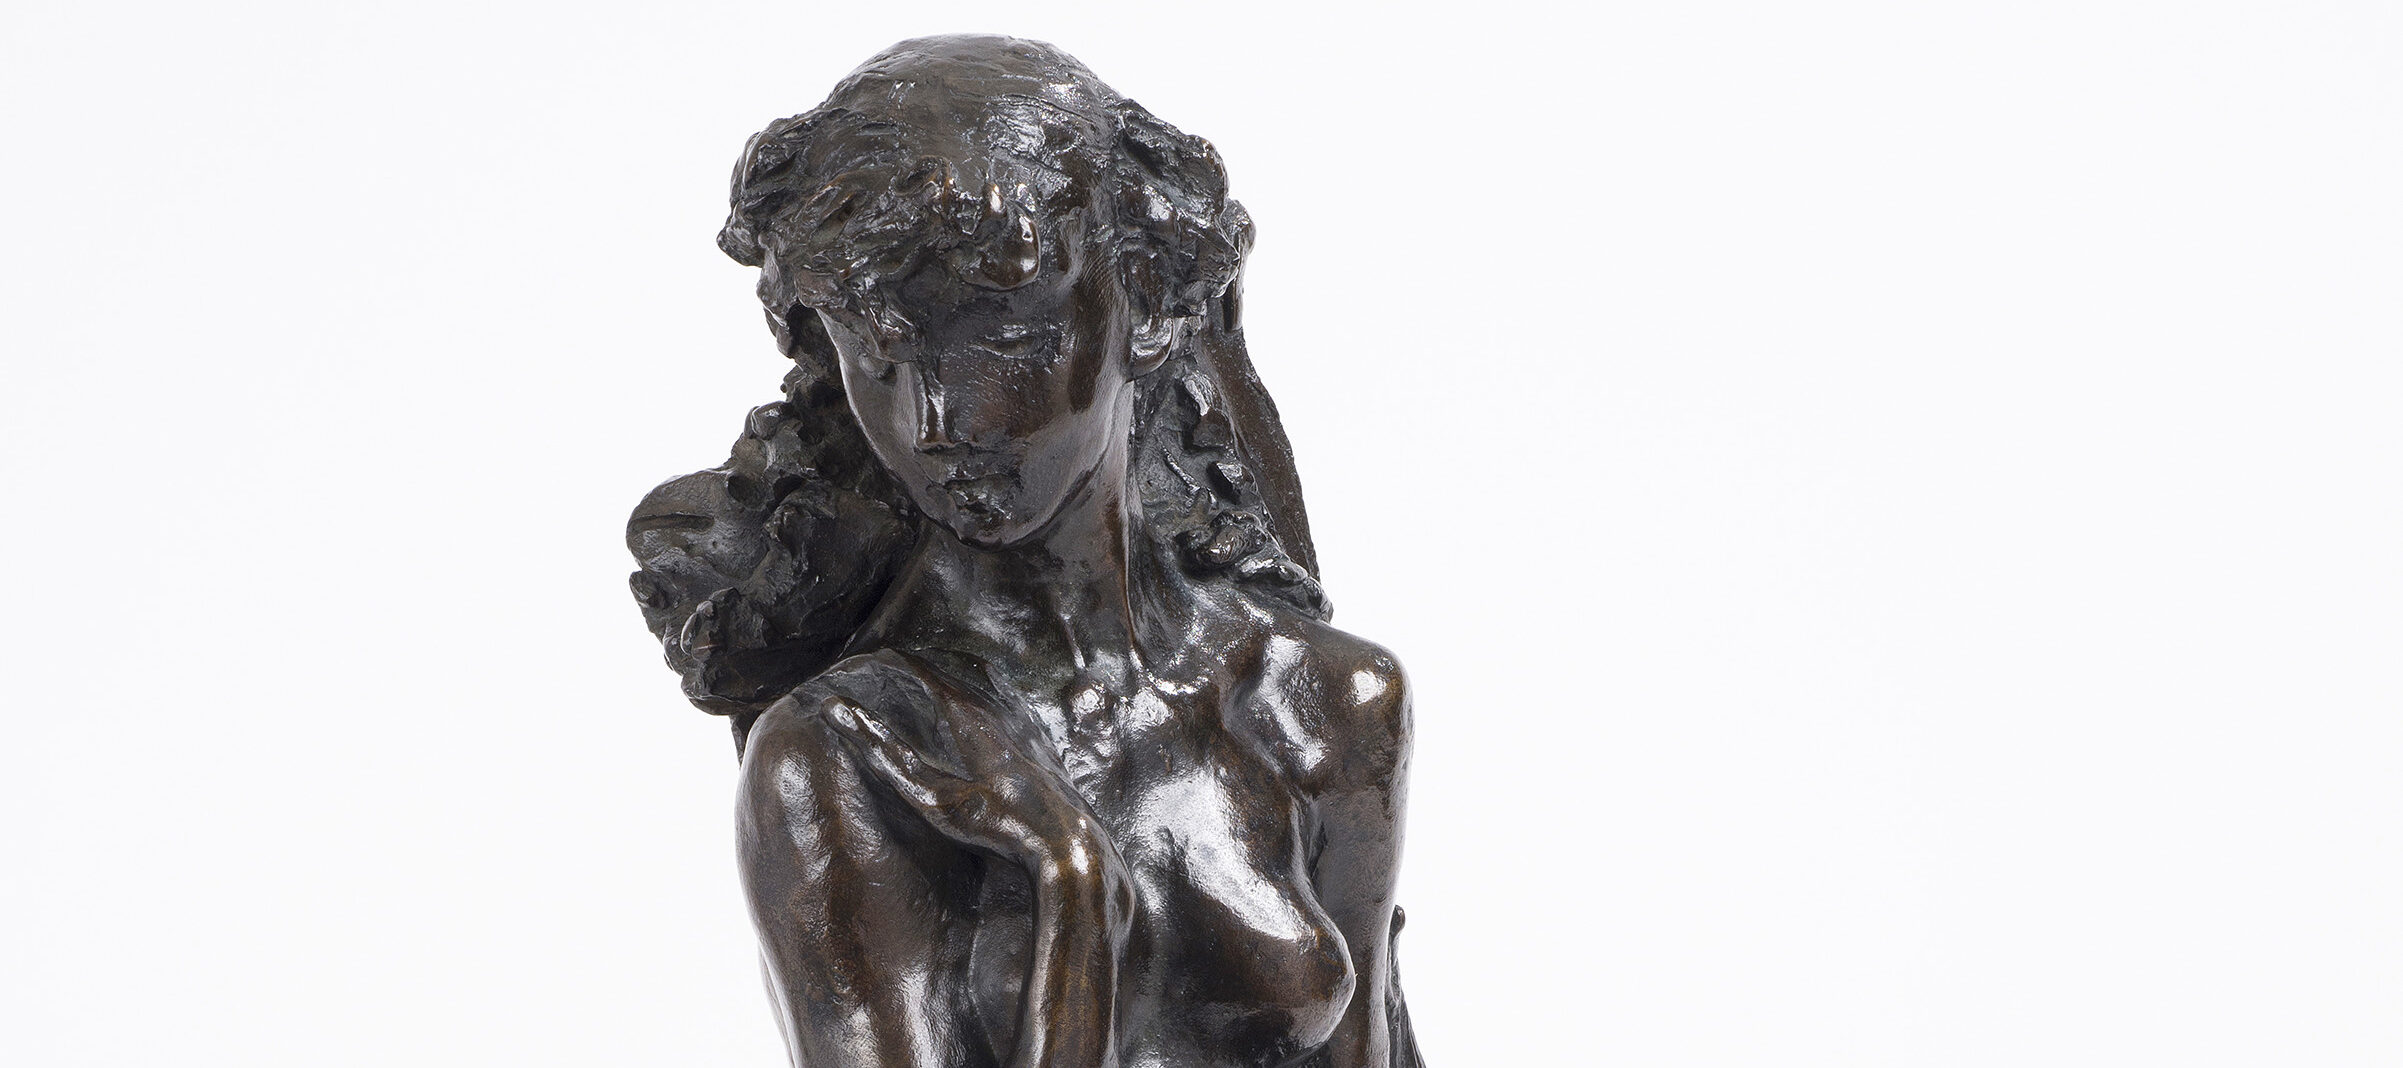 Bronze tabletop sculpture depicting a nude young woman seated on rough-hewn base, leaning against a sheaf of wheat. The figure's knees are drawn together, her left arm hanging at her side and her right arm bent upwards, clasping her shoulder.